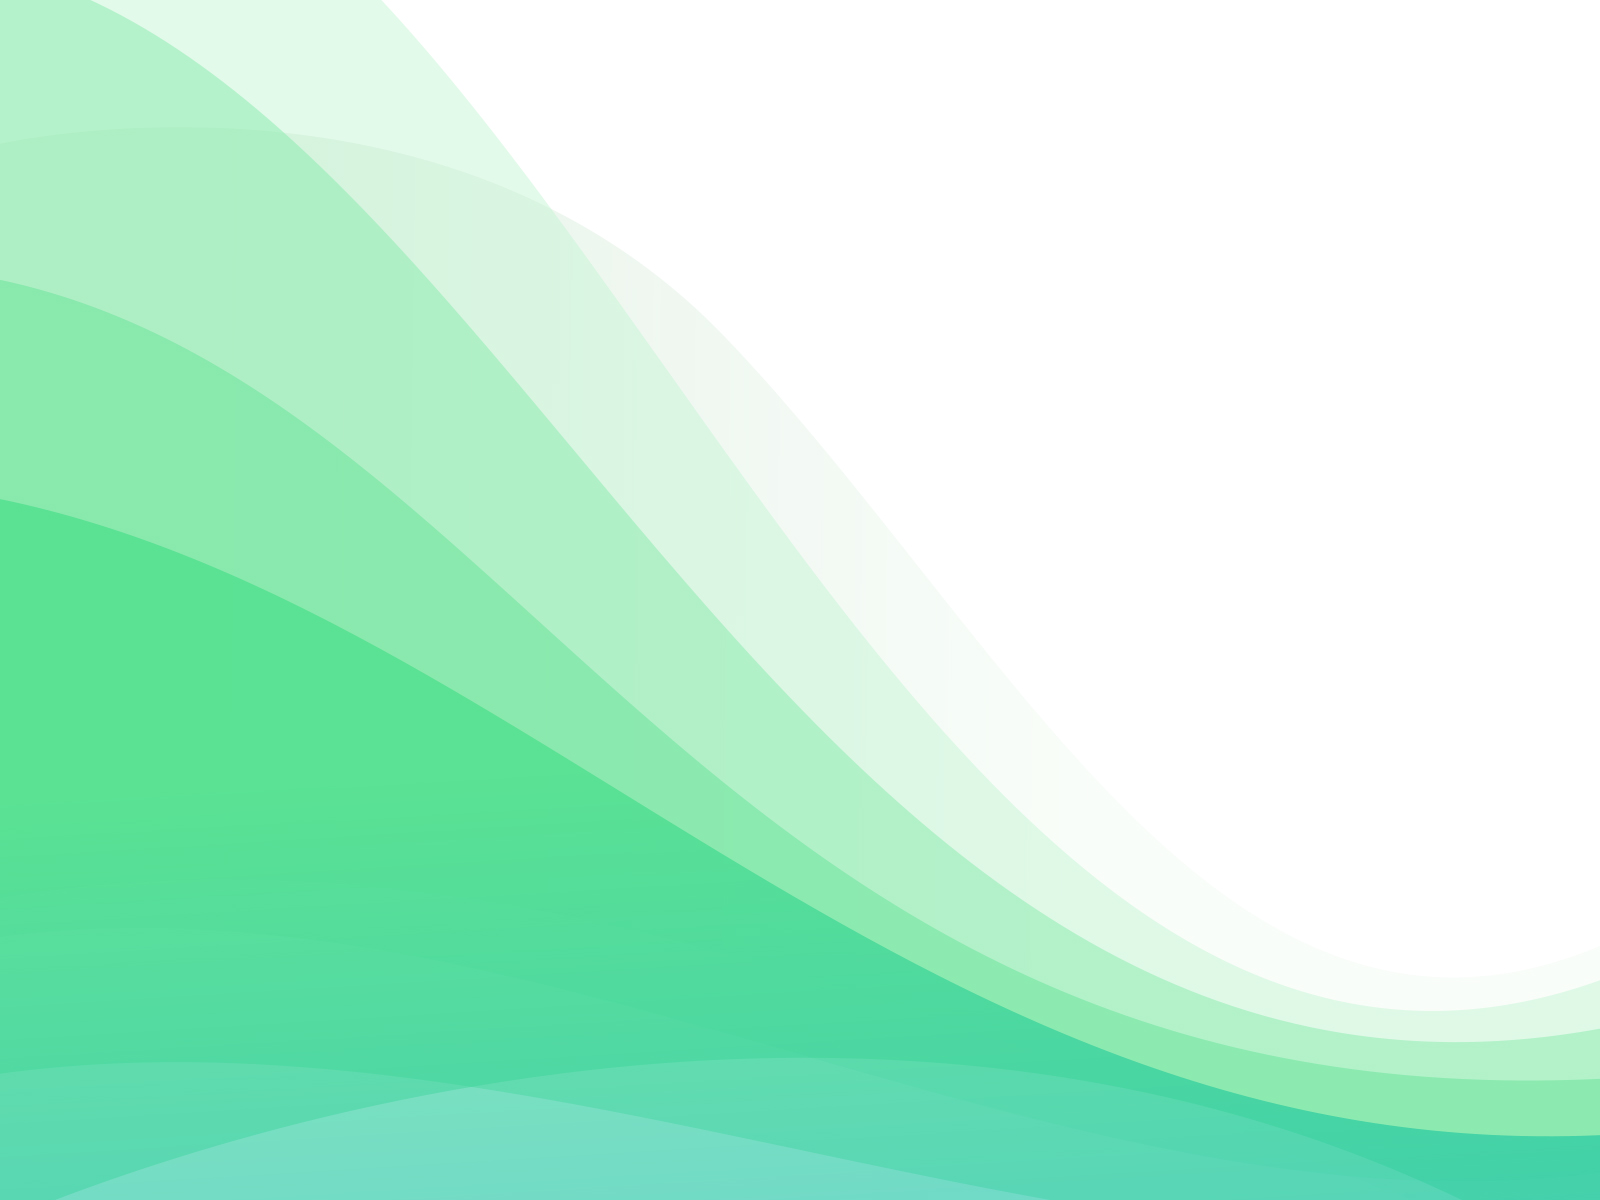 background template with waves backgrounds abstract